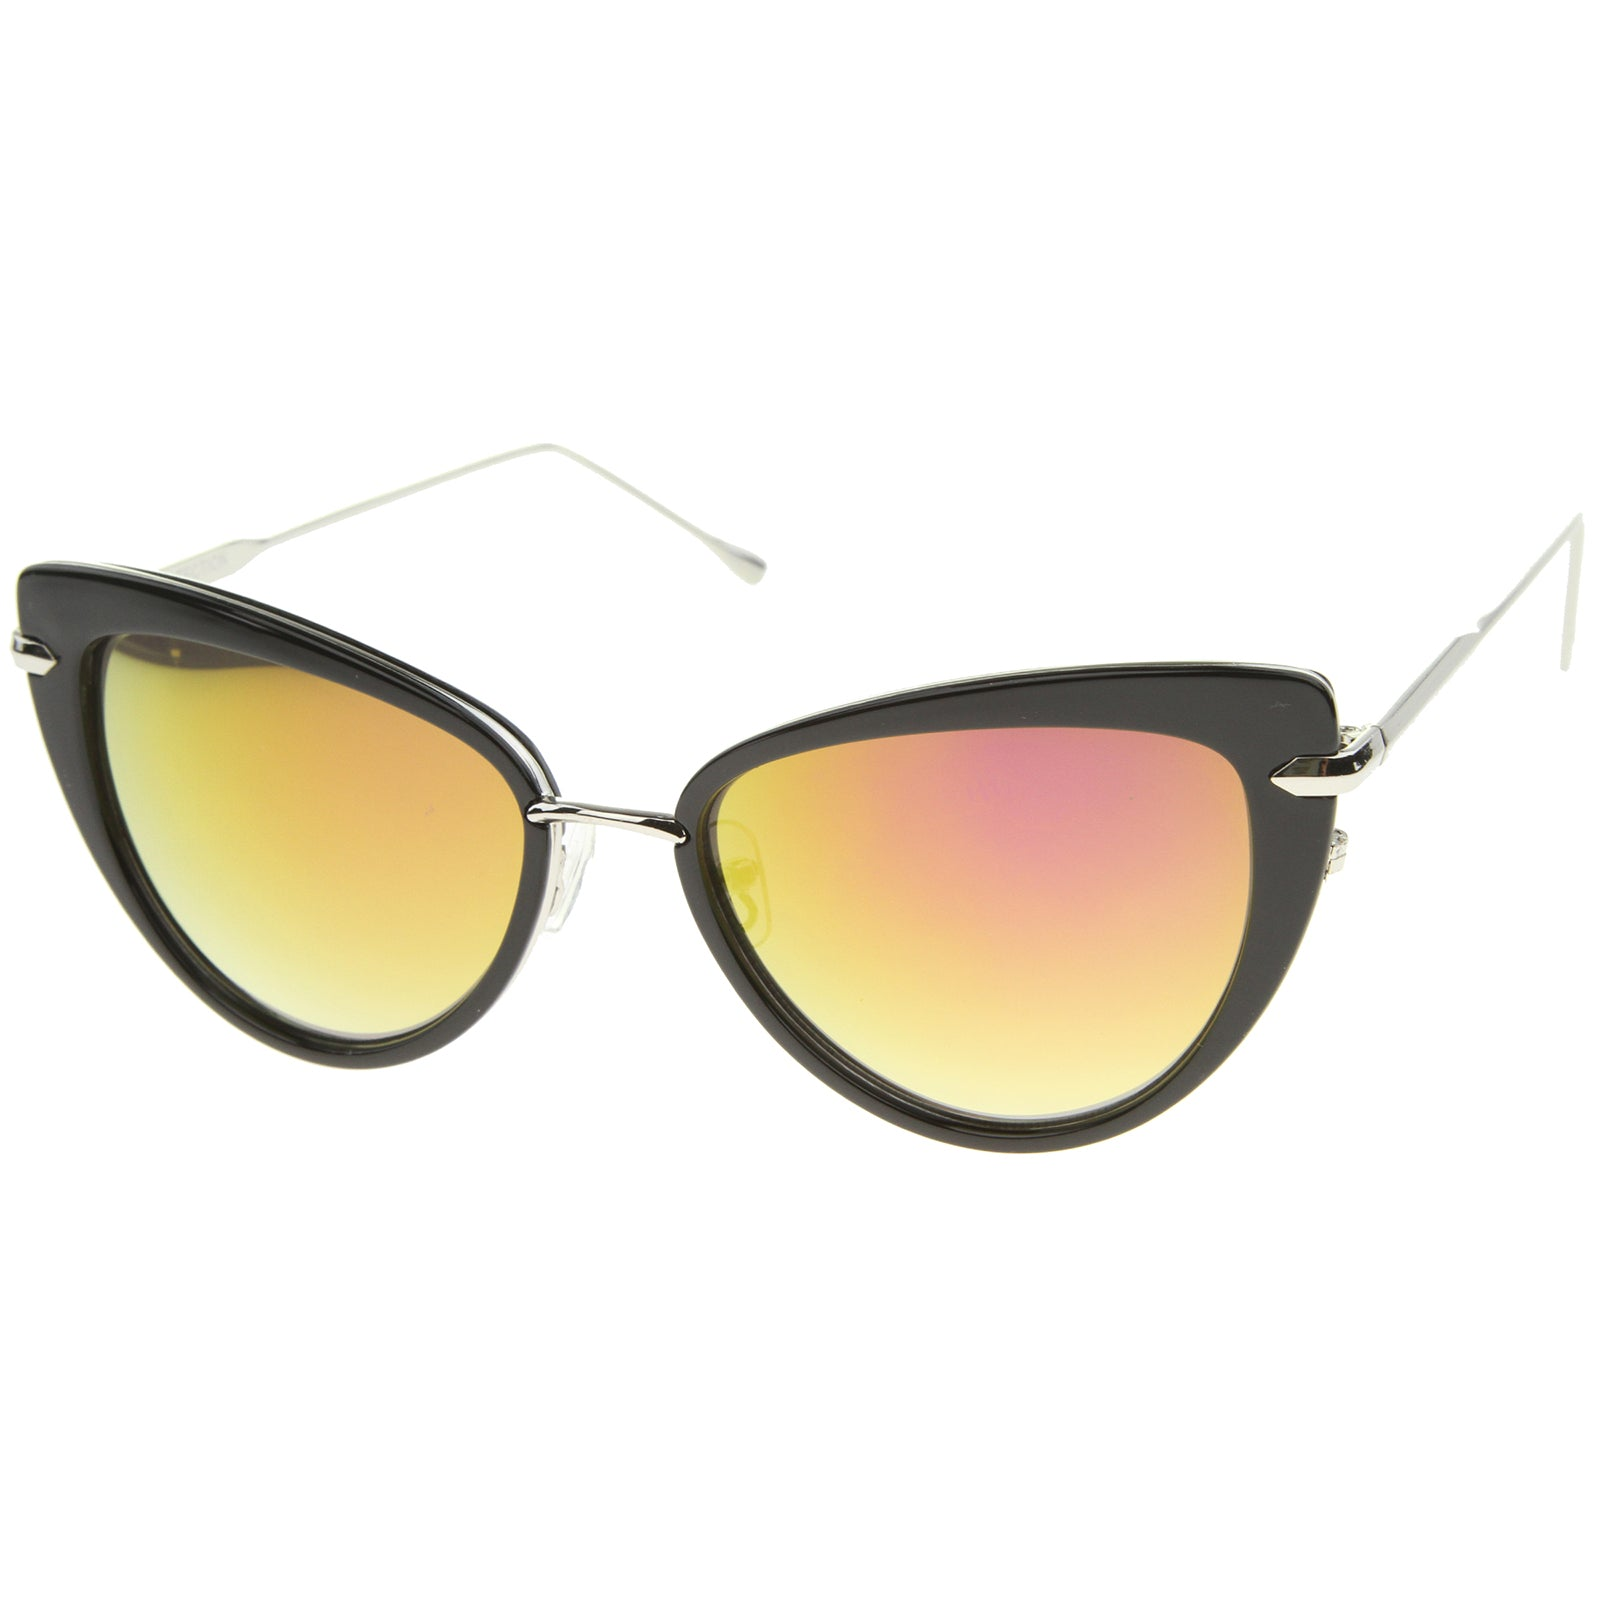 Women's High Fashion Metal Temple Super Cat Eye Sunglasses 55mm - sunglass.la - 14